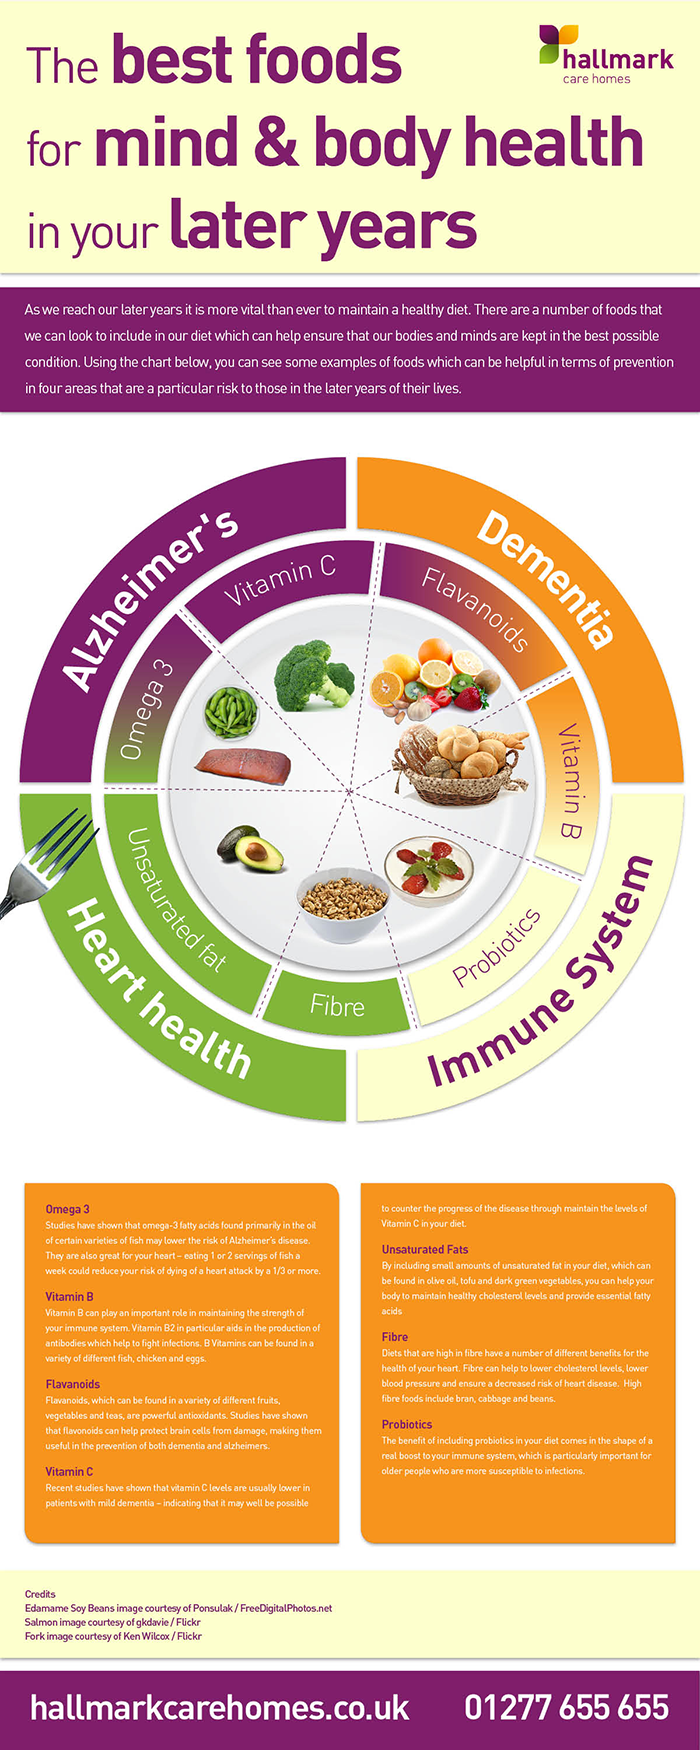 hallmark_best_foods_infographic_resized_0e6df0a85aed20066a51f4a776f8a343